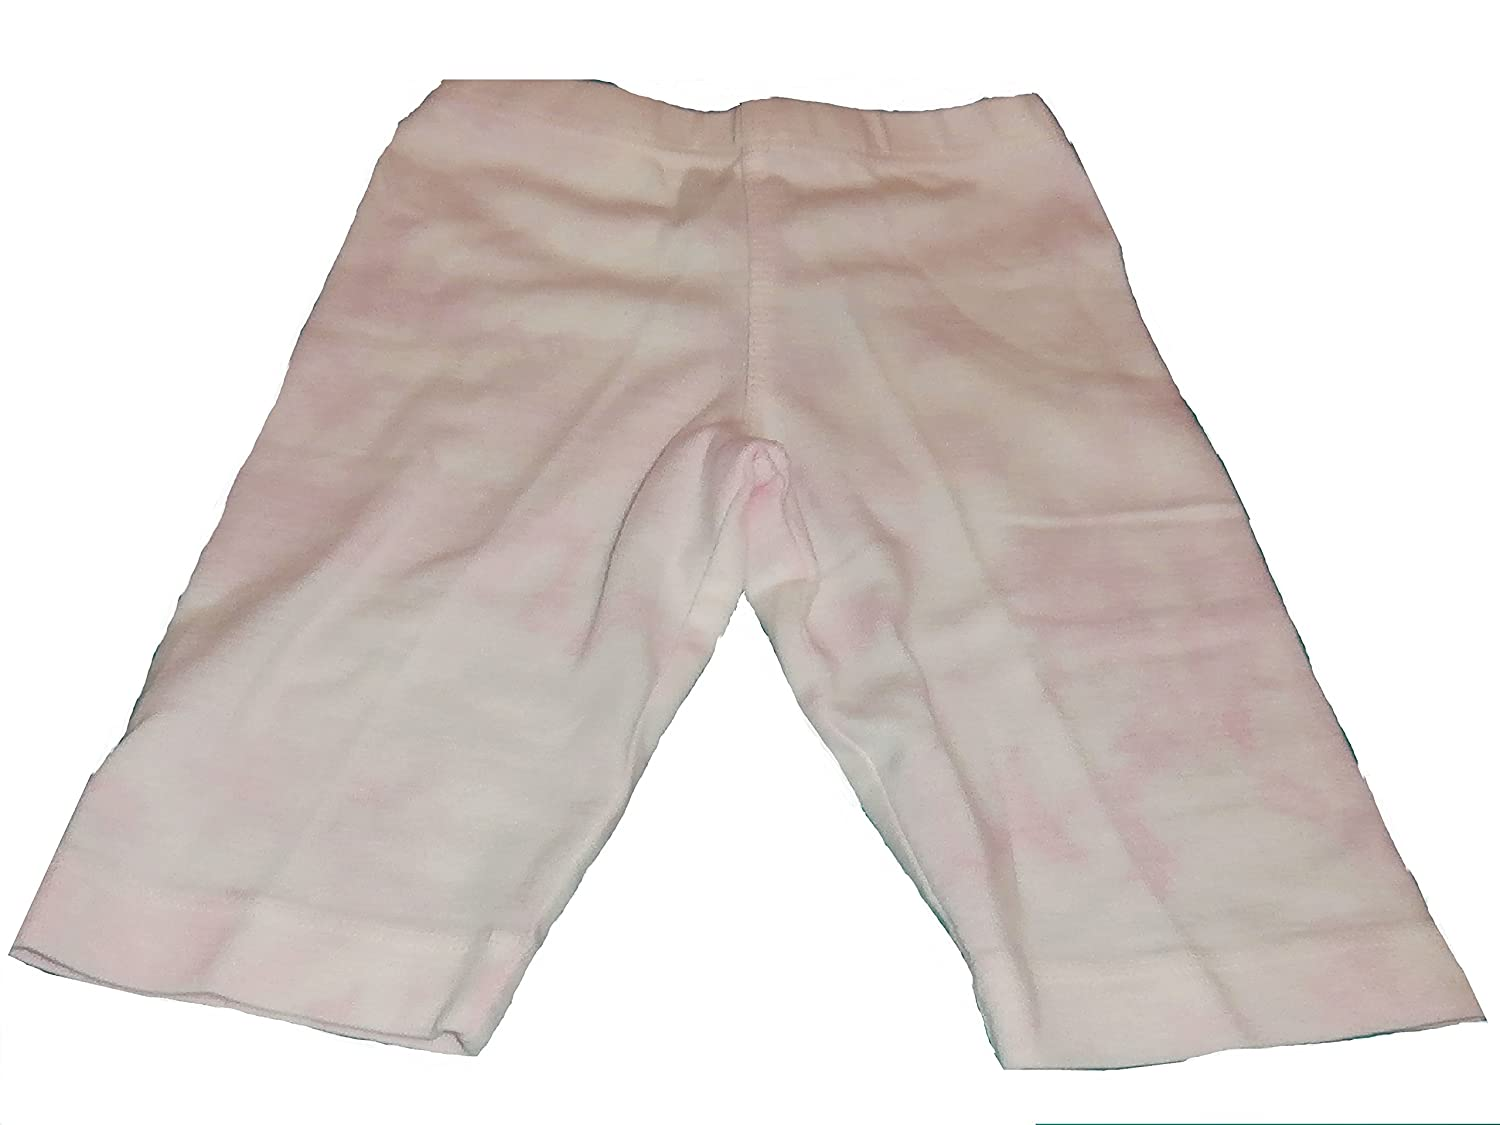 18-24 Months, Pink Tie Dye Cotton Pants 0 to 24 Months